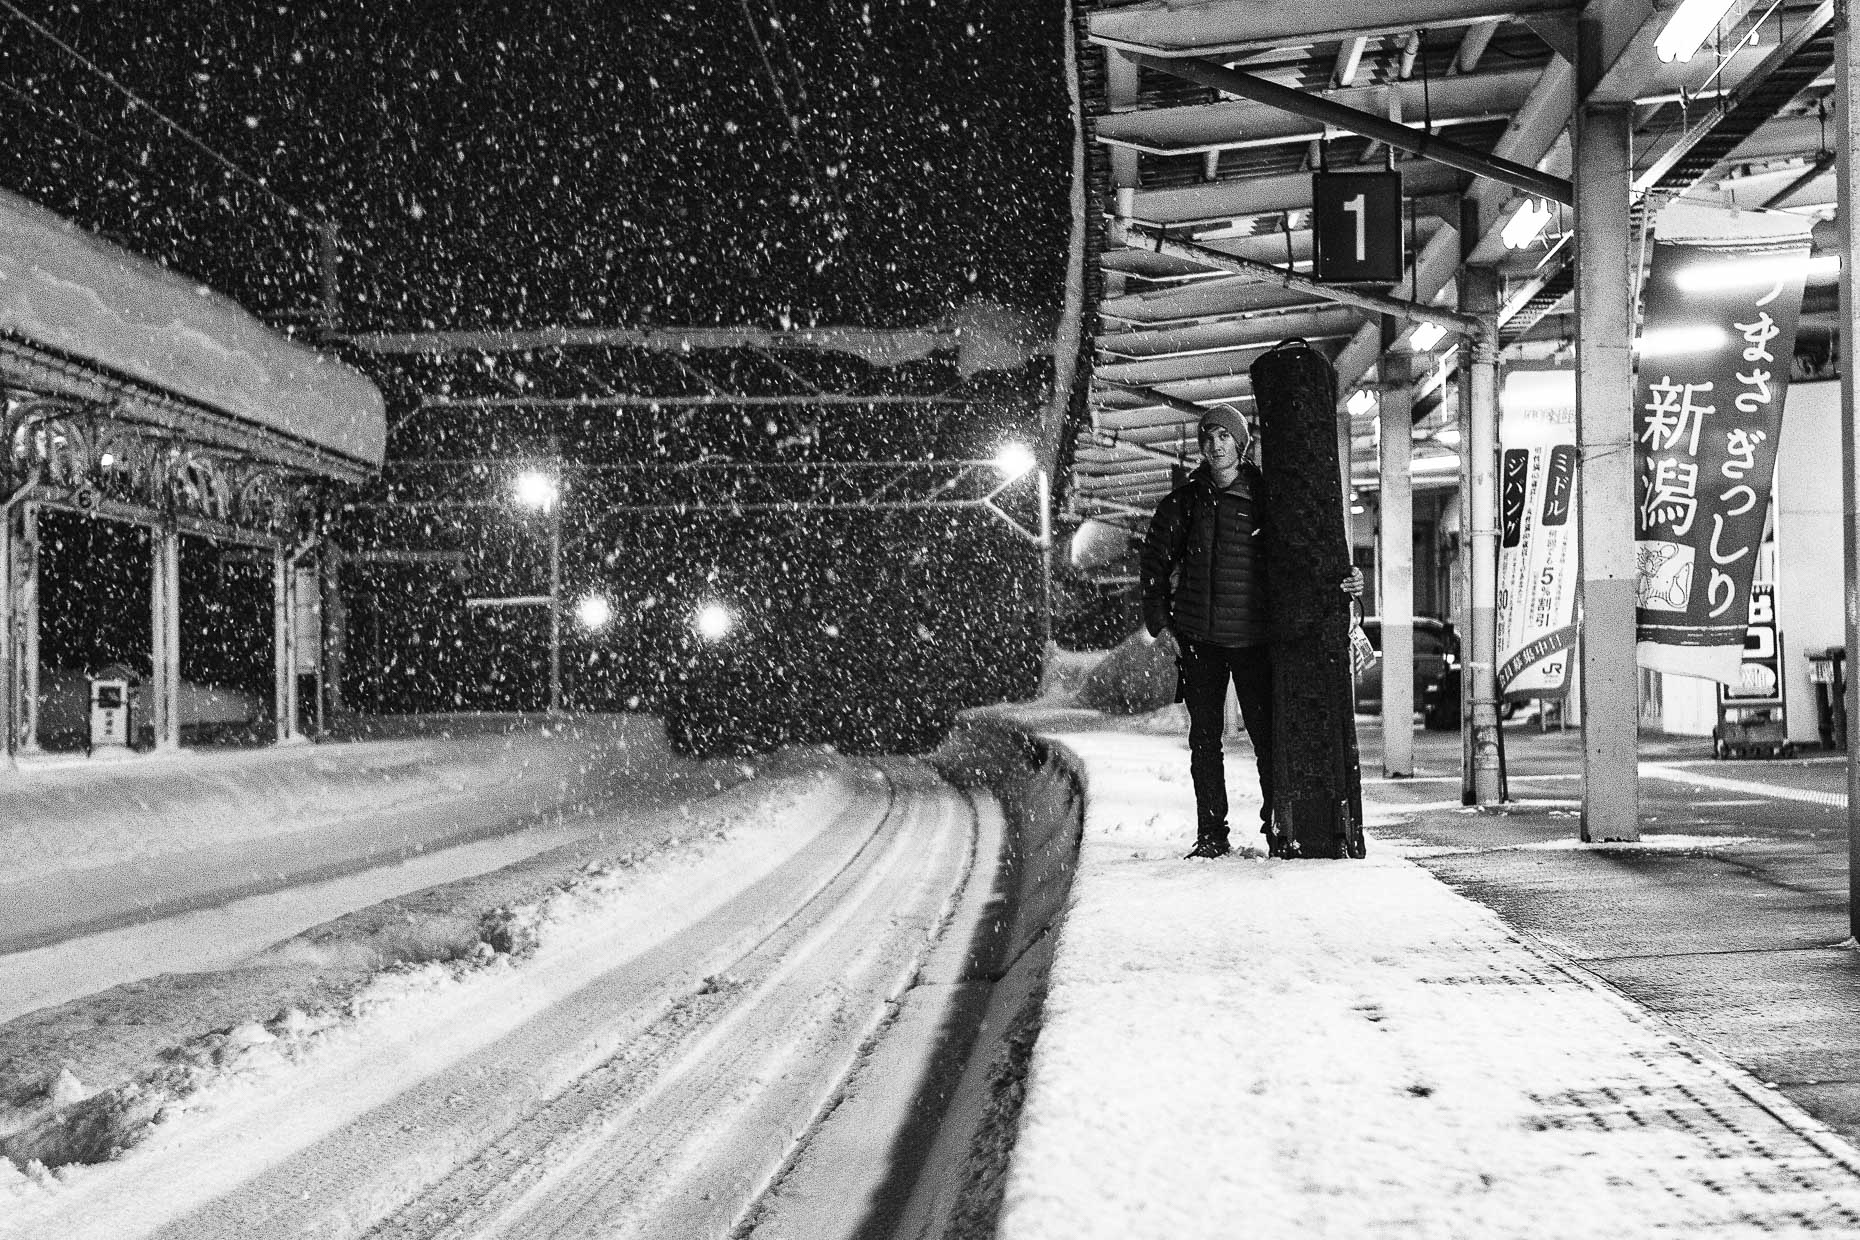 Waiting for the train, 062_201201065465-Edit